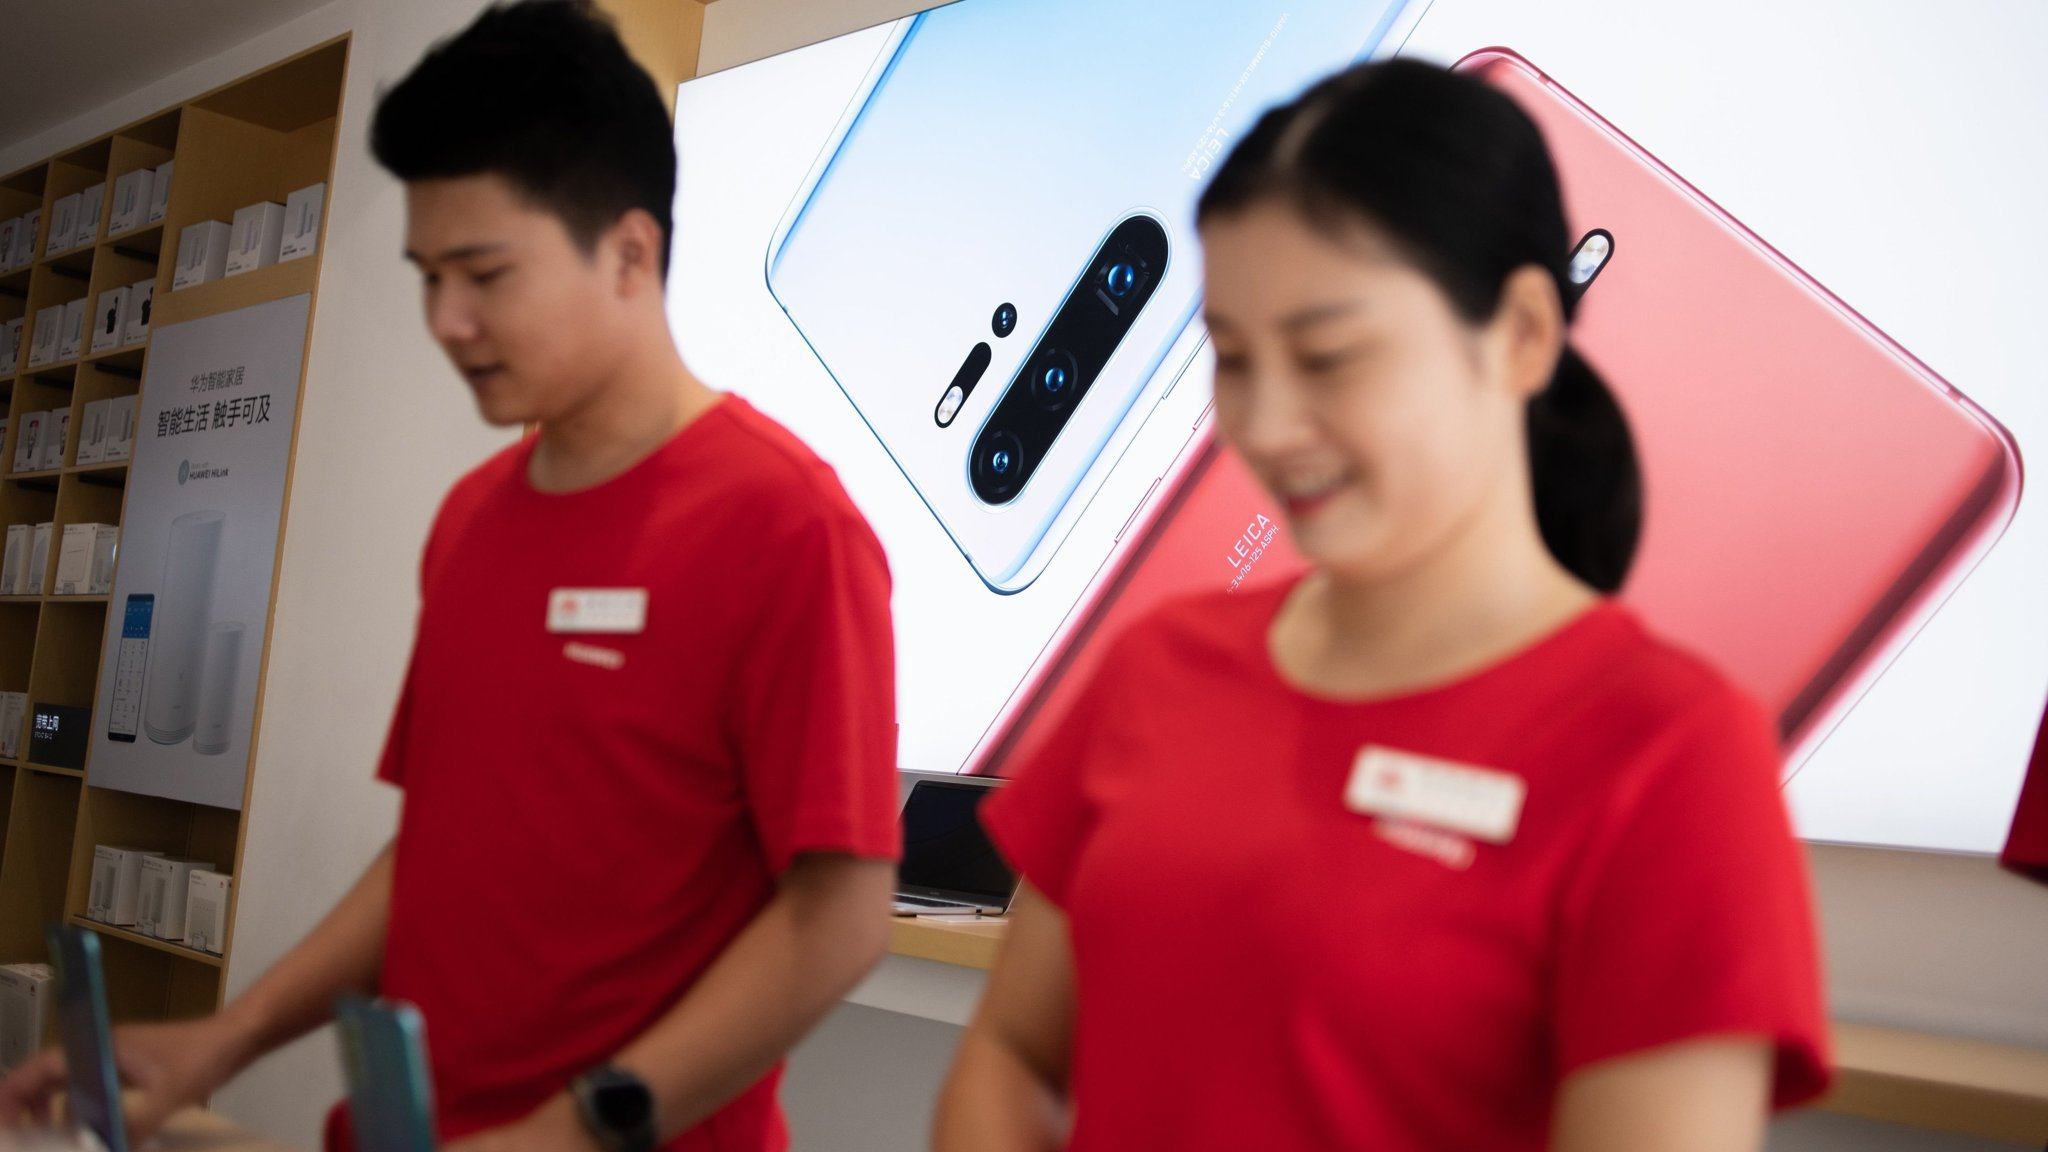 US tech groups in the dark about renewal of Huawei sales licence